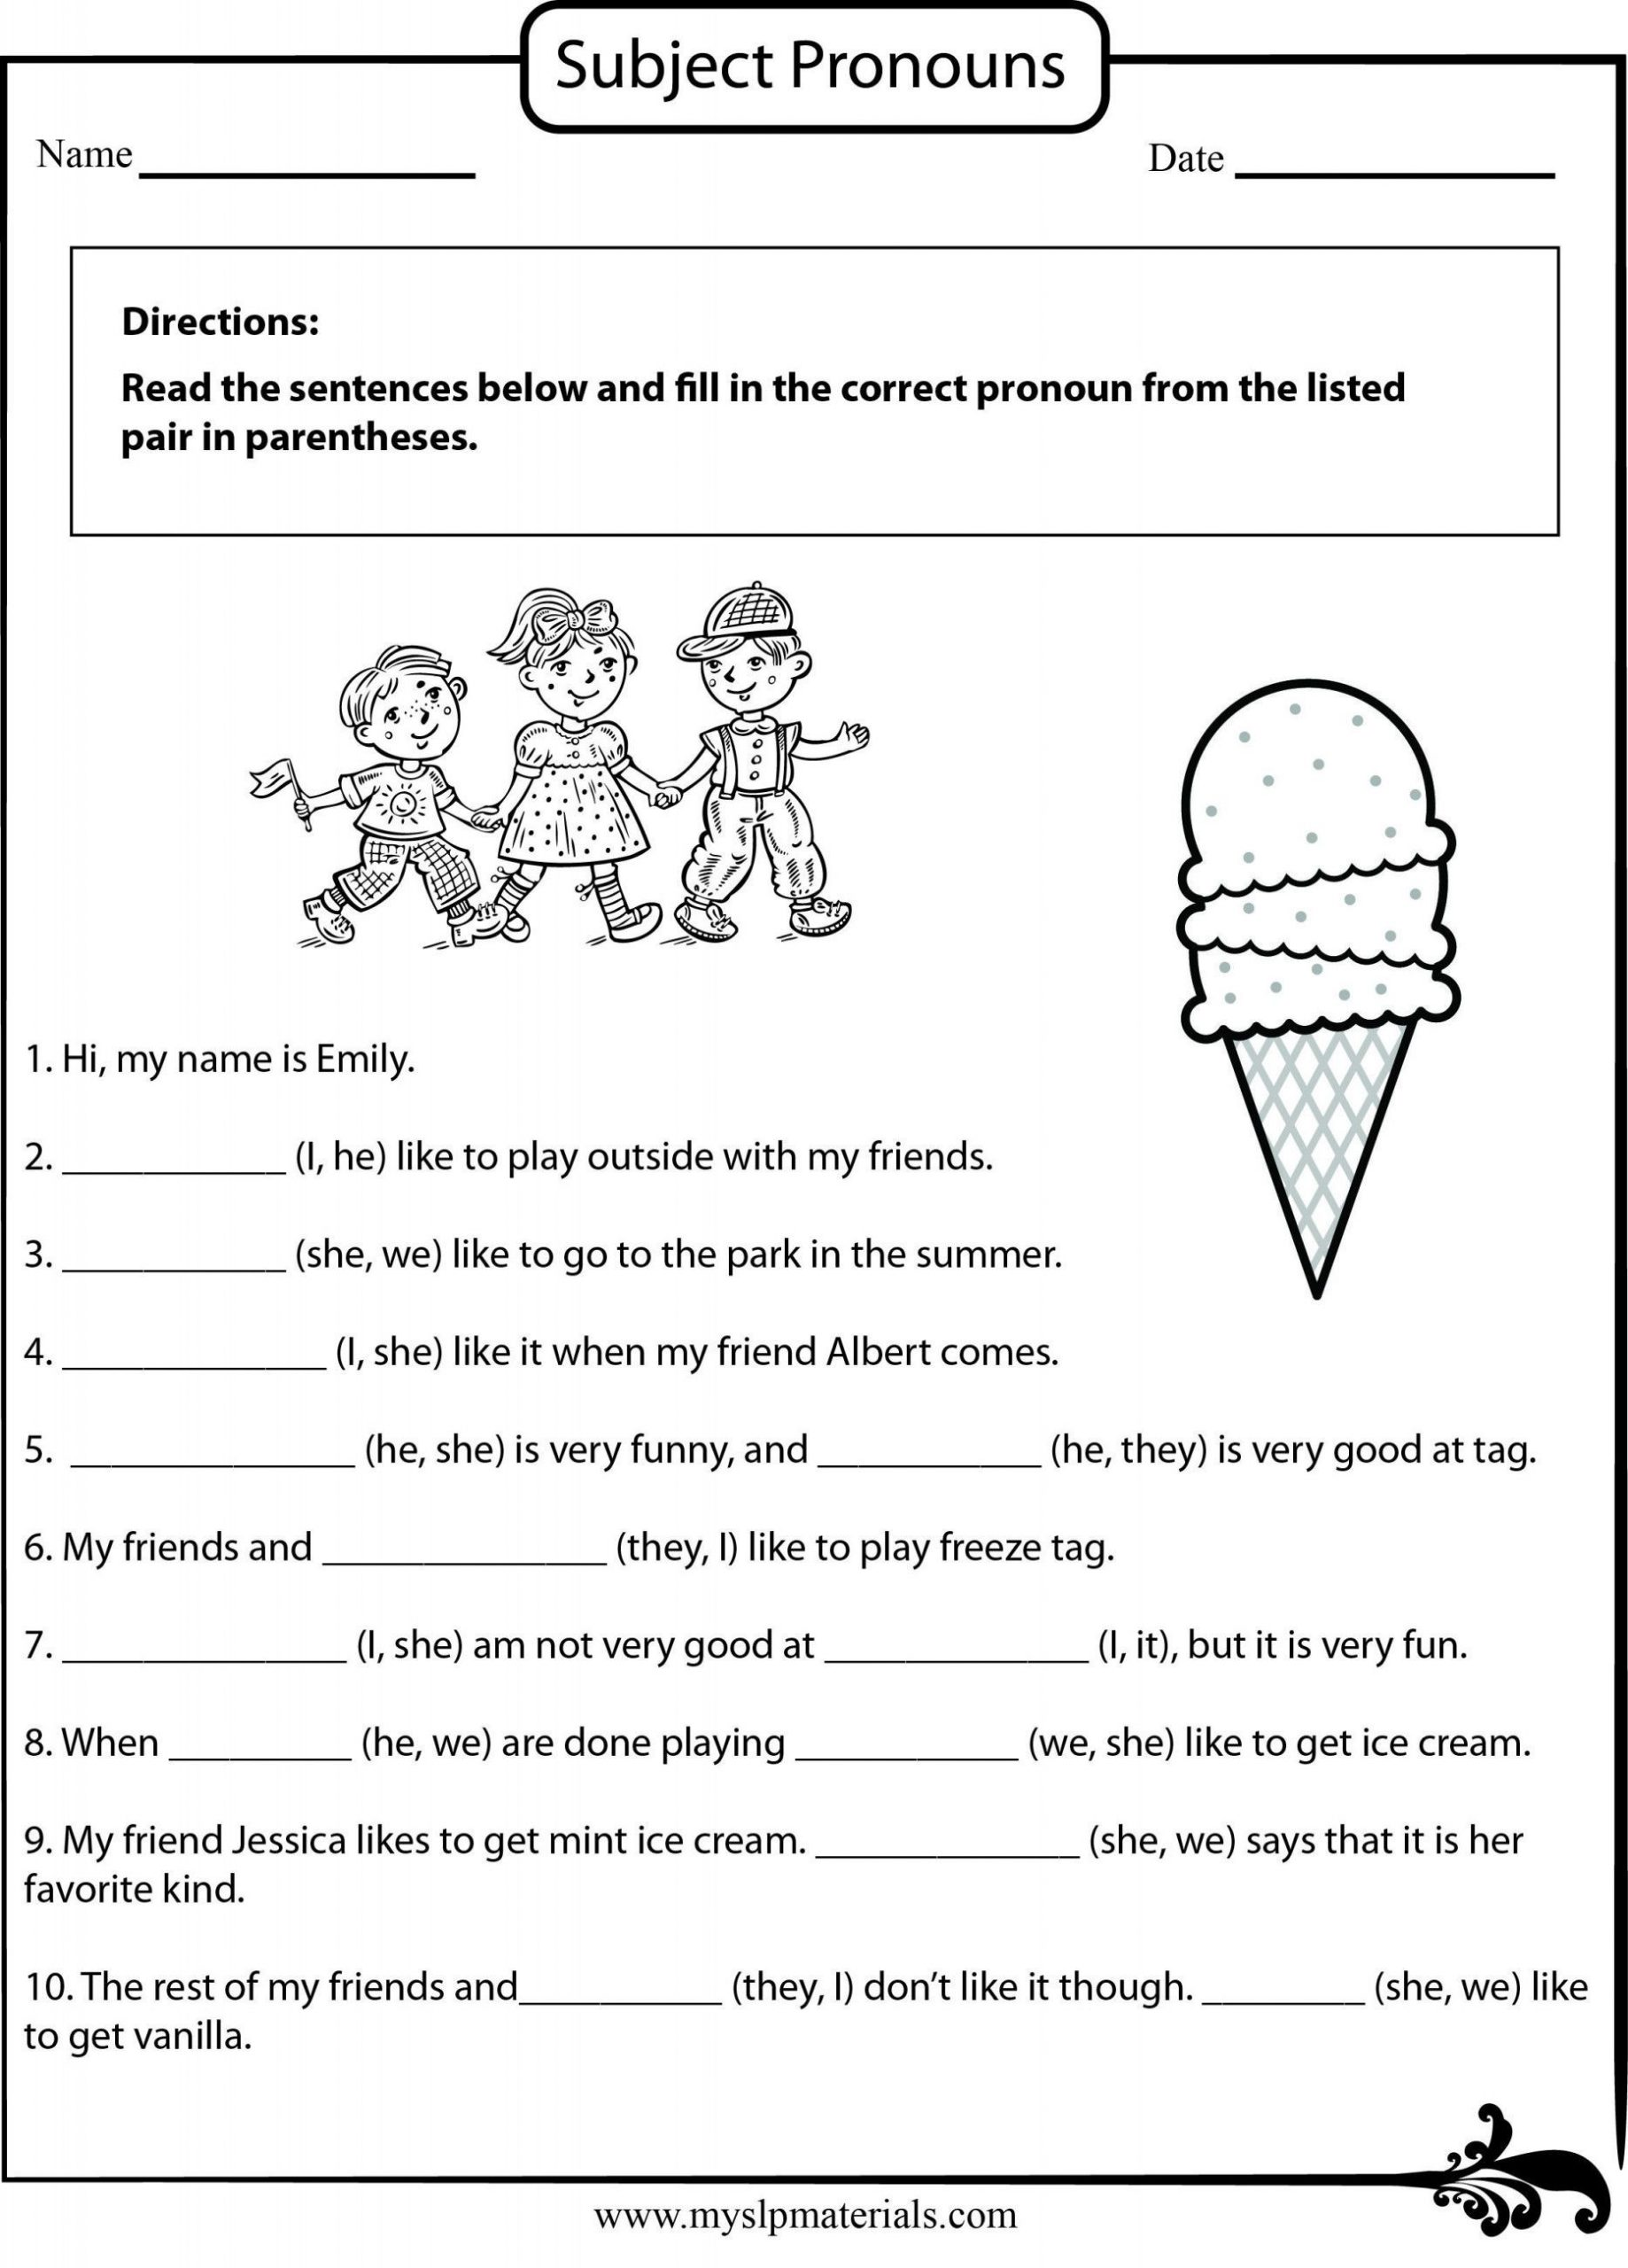 Second Grade Pronoun Worksheets Pronoun Worksheet for Grade 2 Doc